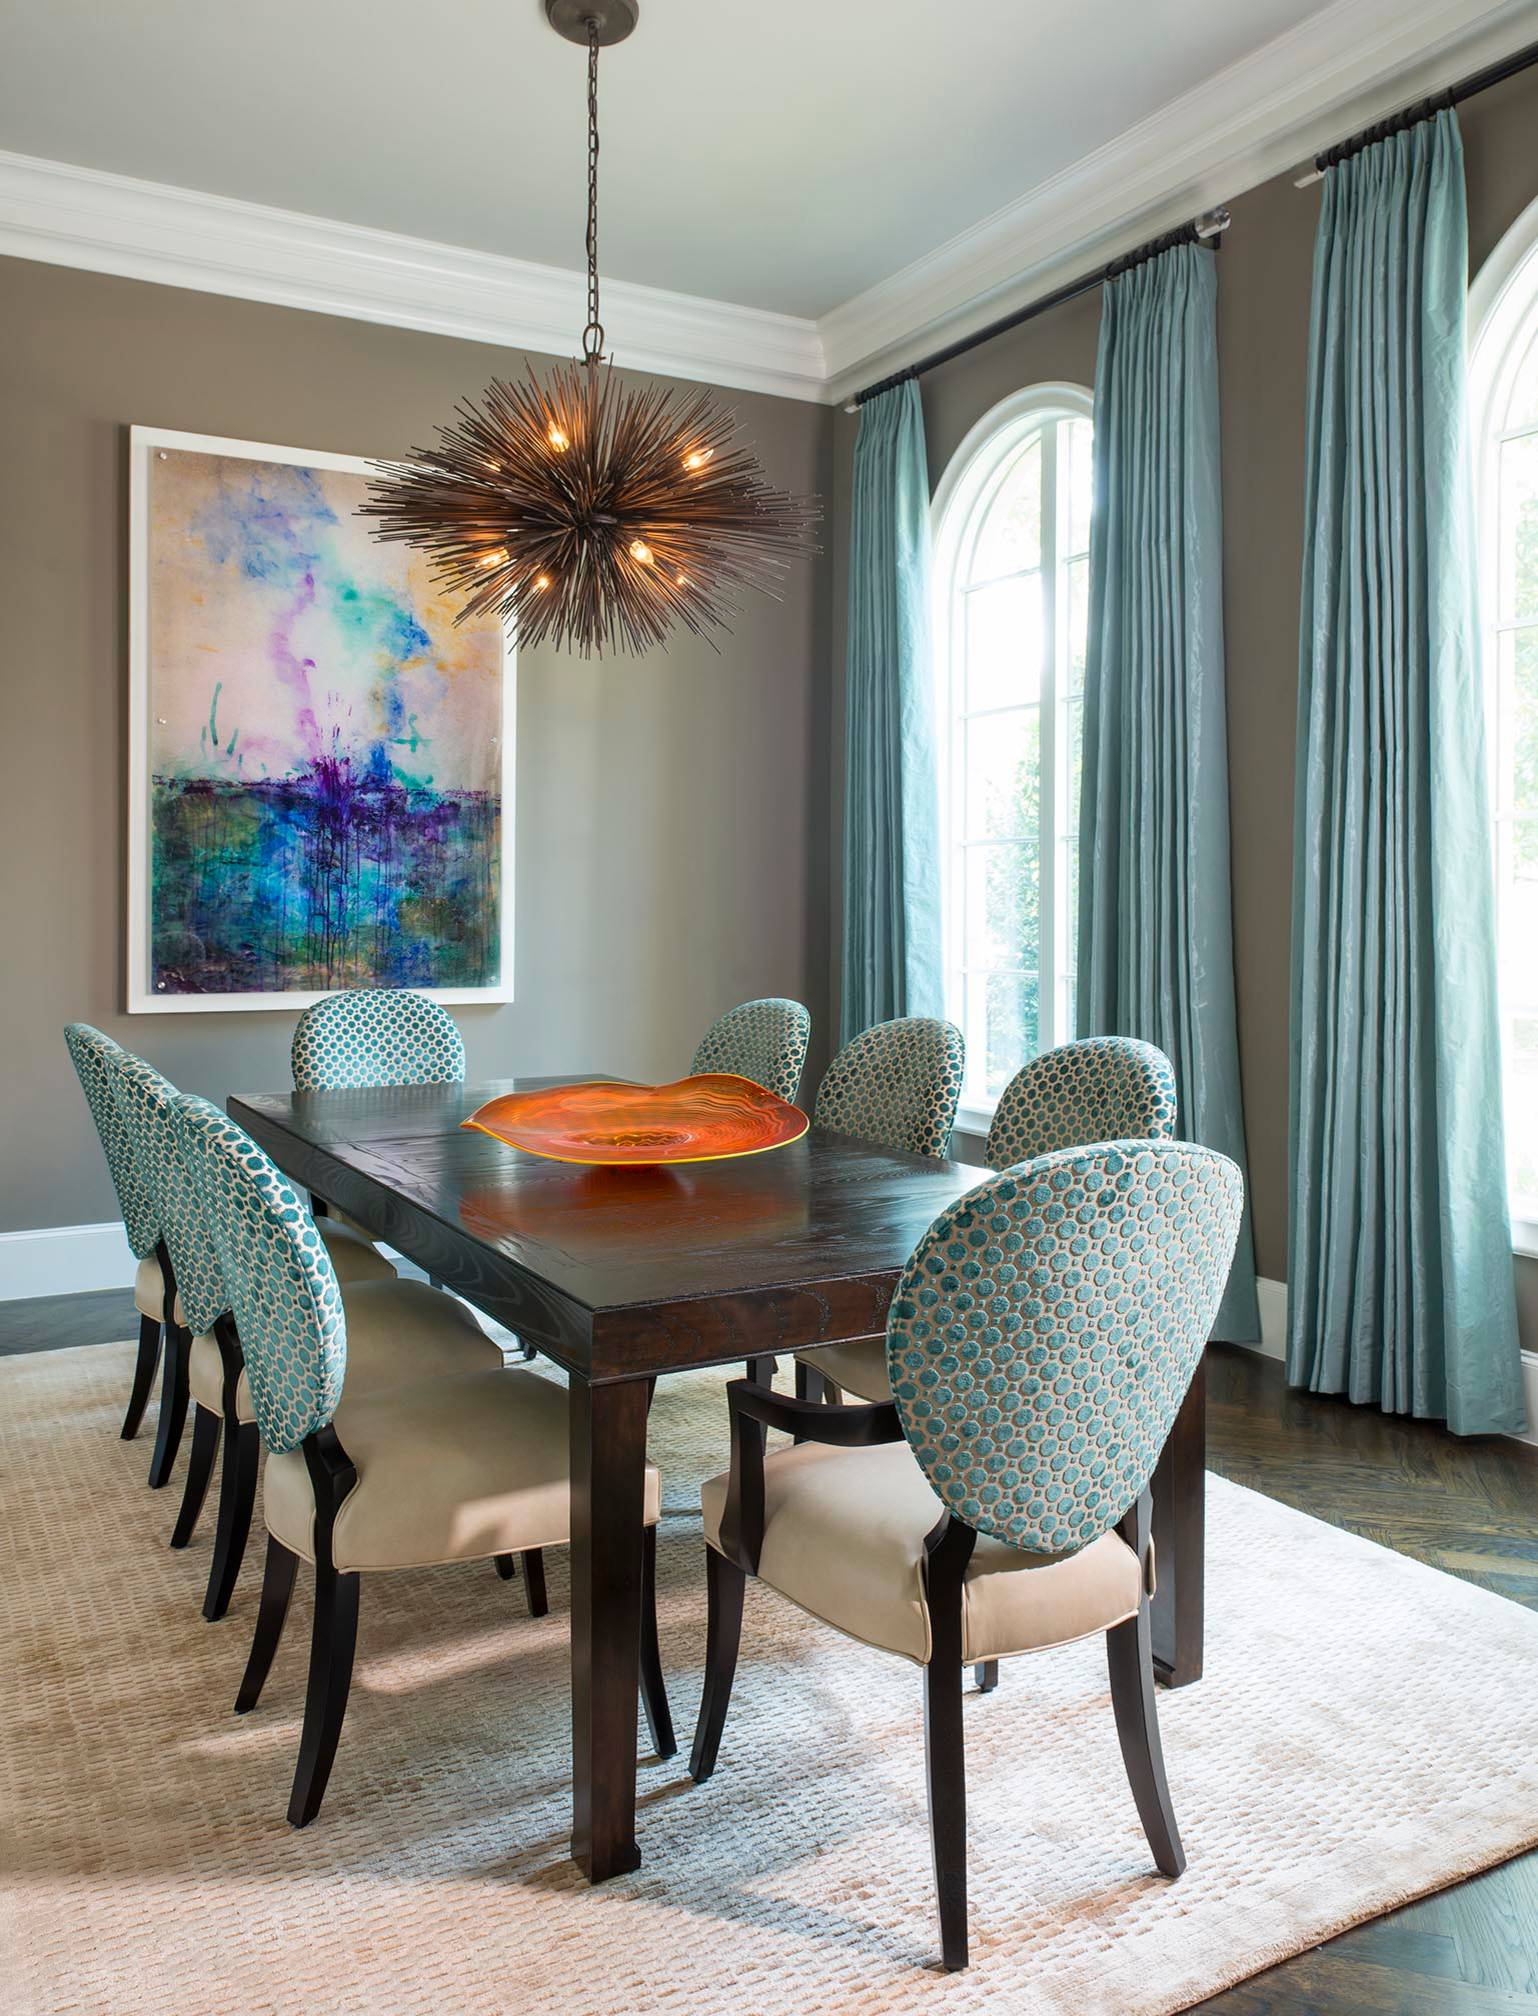 Comfortable Dining Ideas Photos Houzz, Stylish Dining Room Chairs